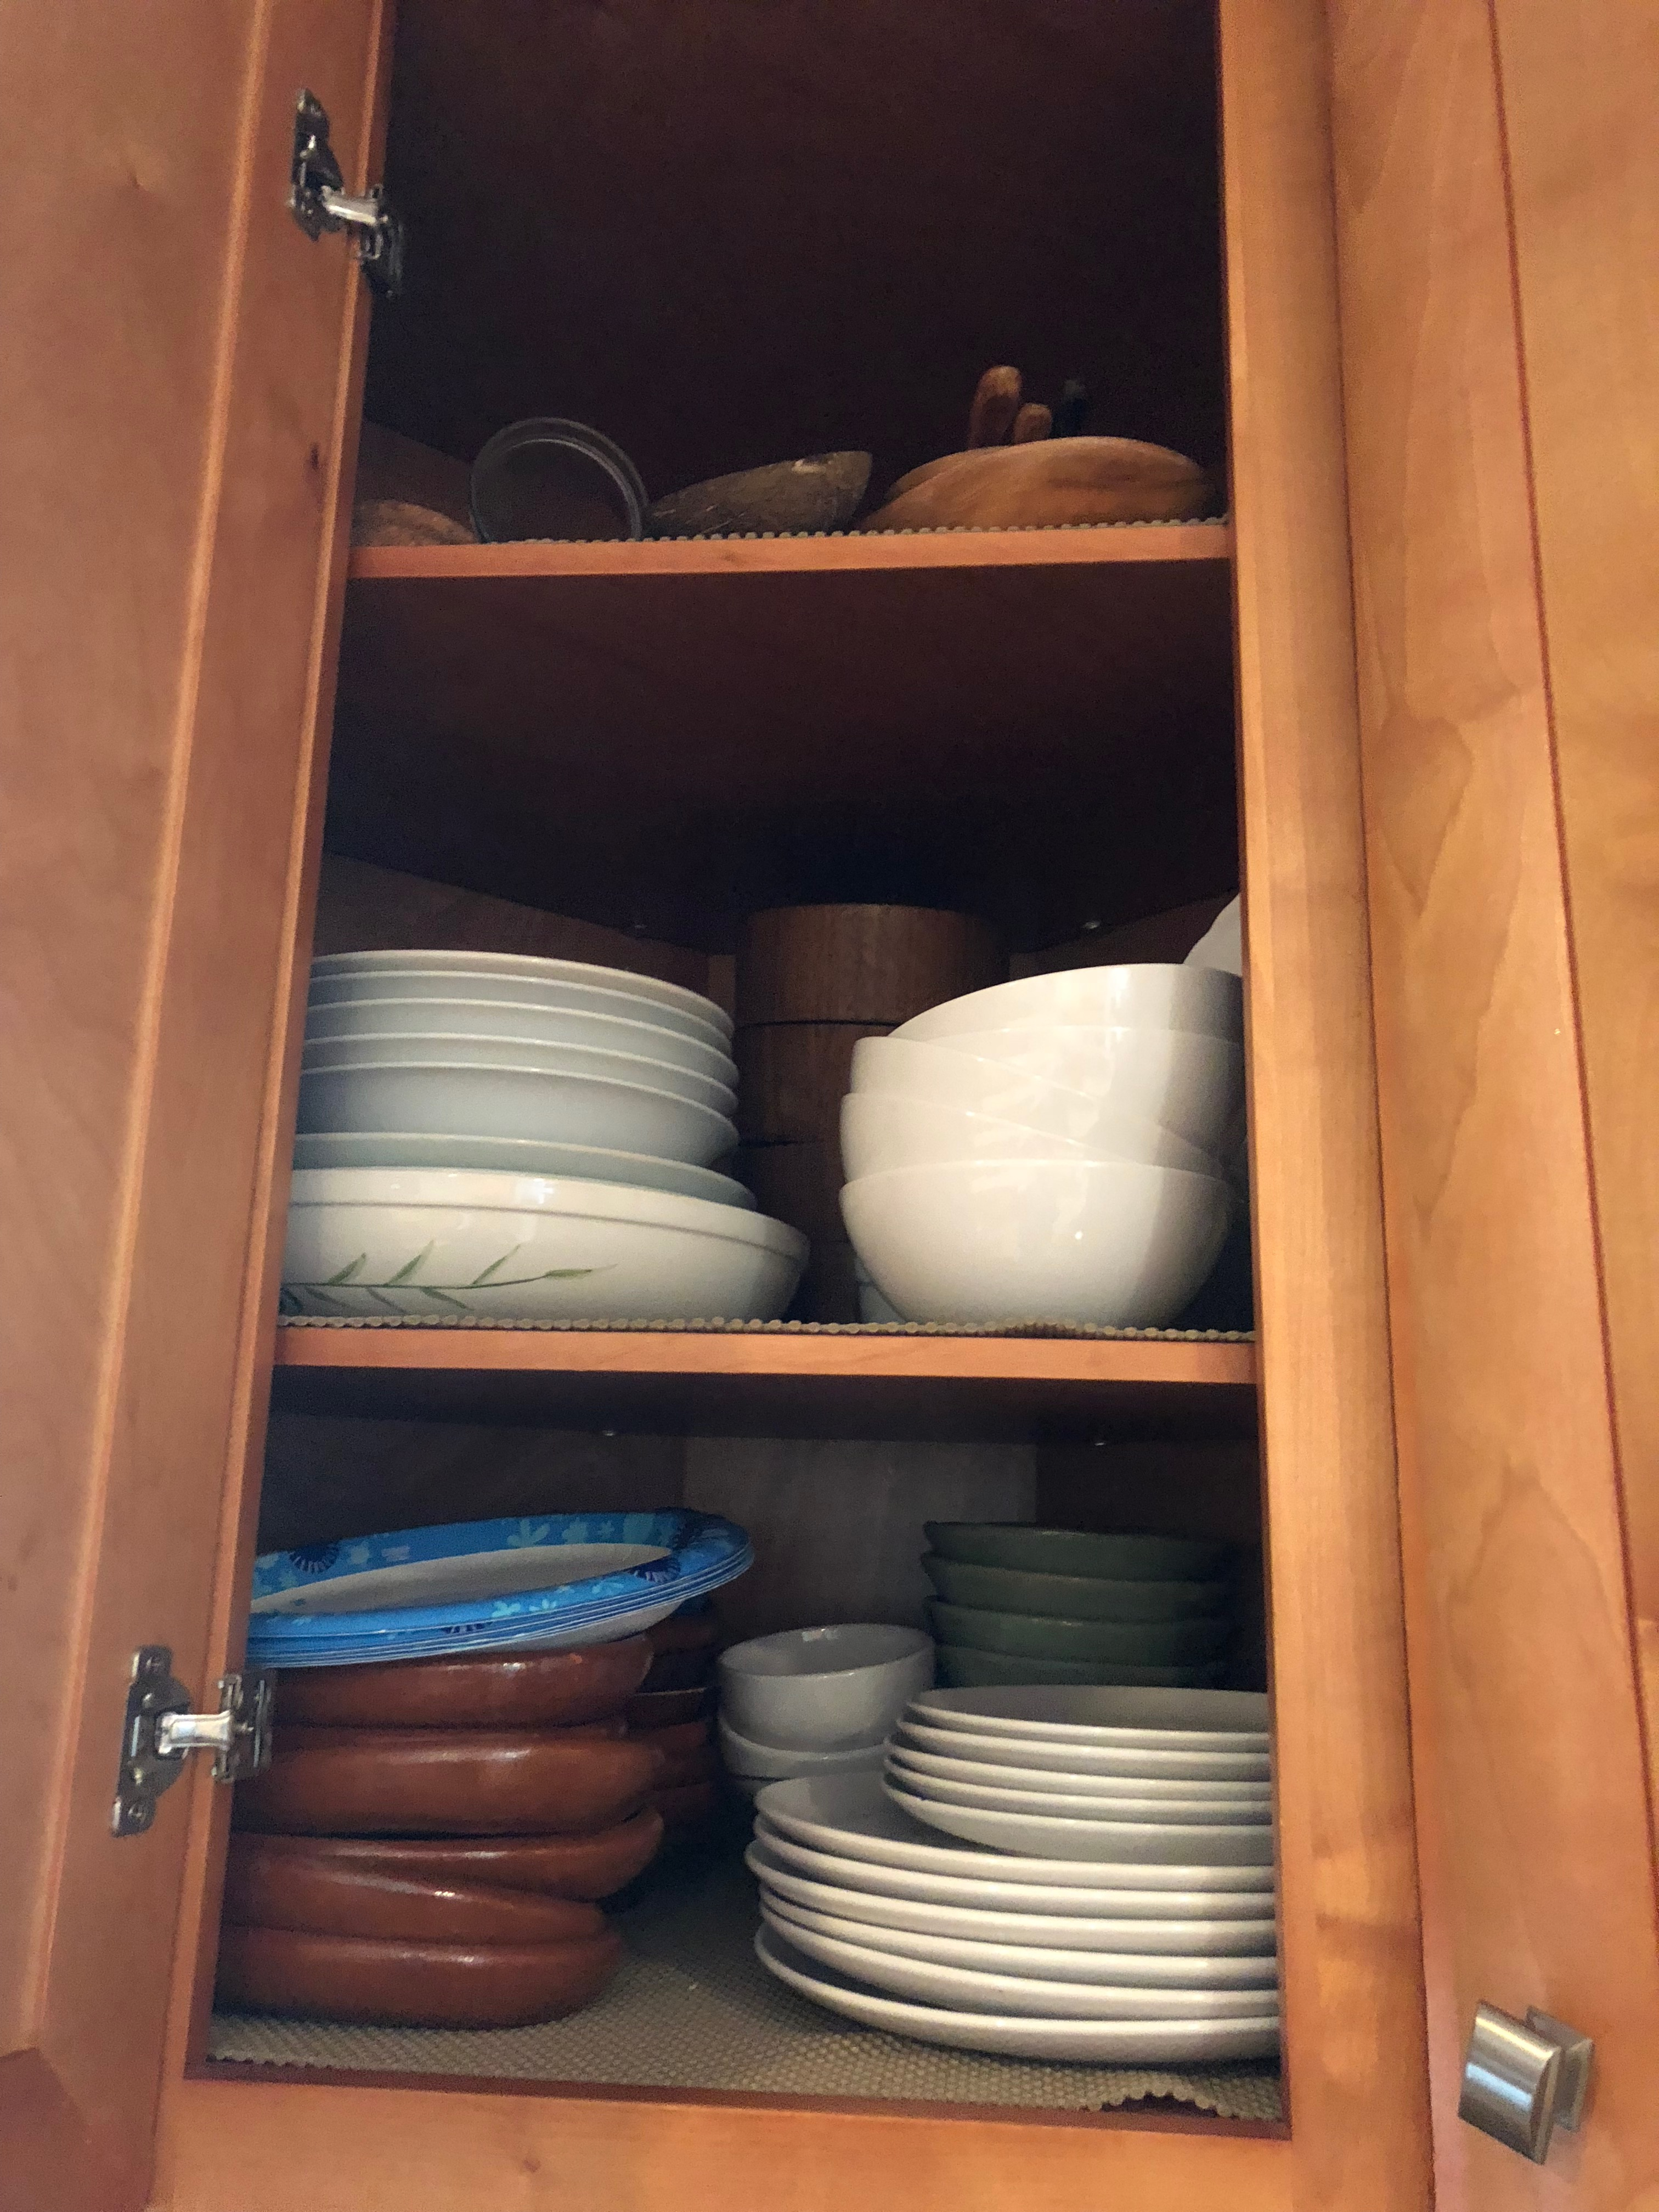 Before: Everyday Dishes